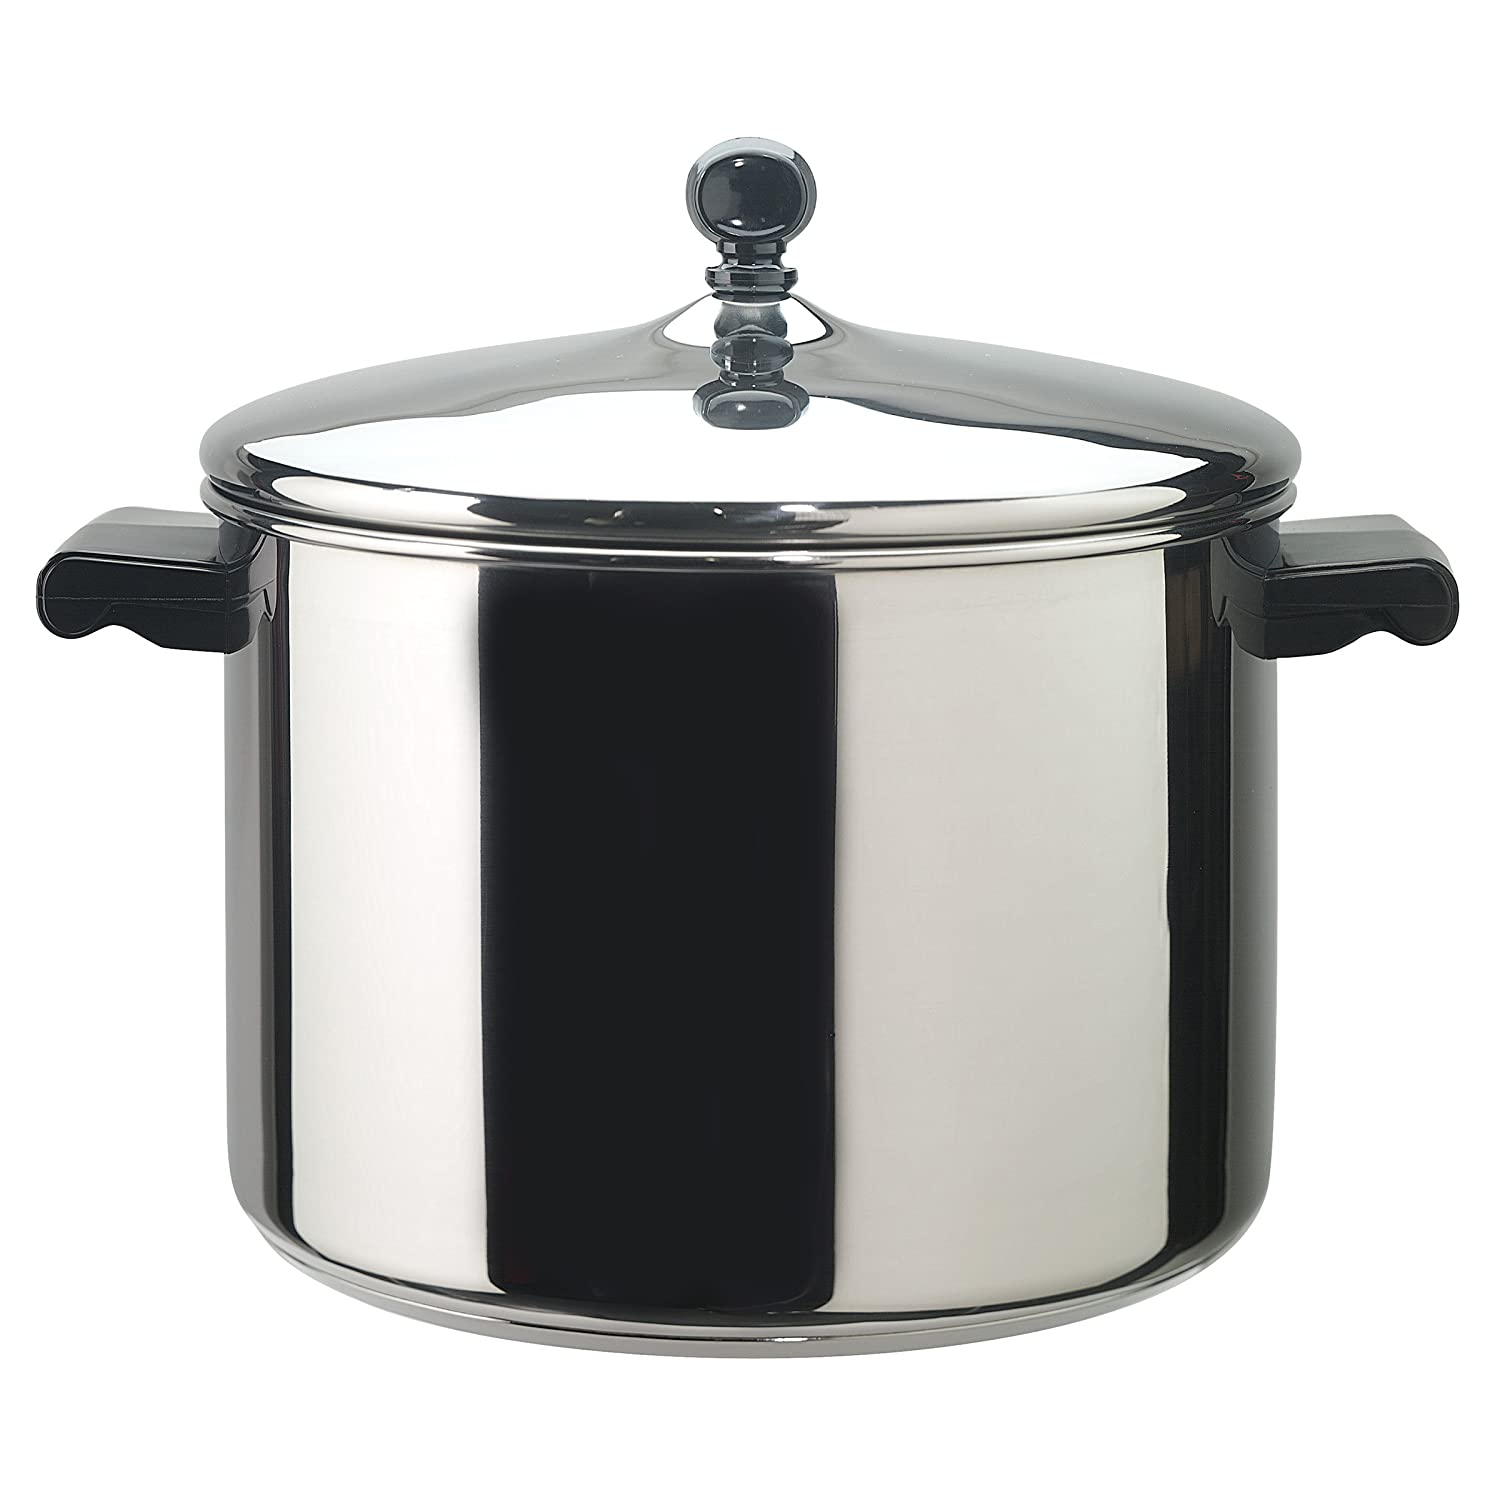 Farberware Classic Series Stainless Steel 8-Quart Covered Saucepot